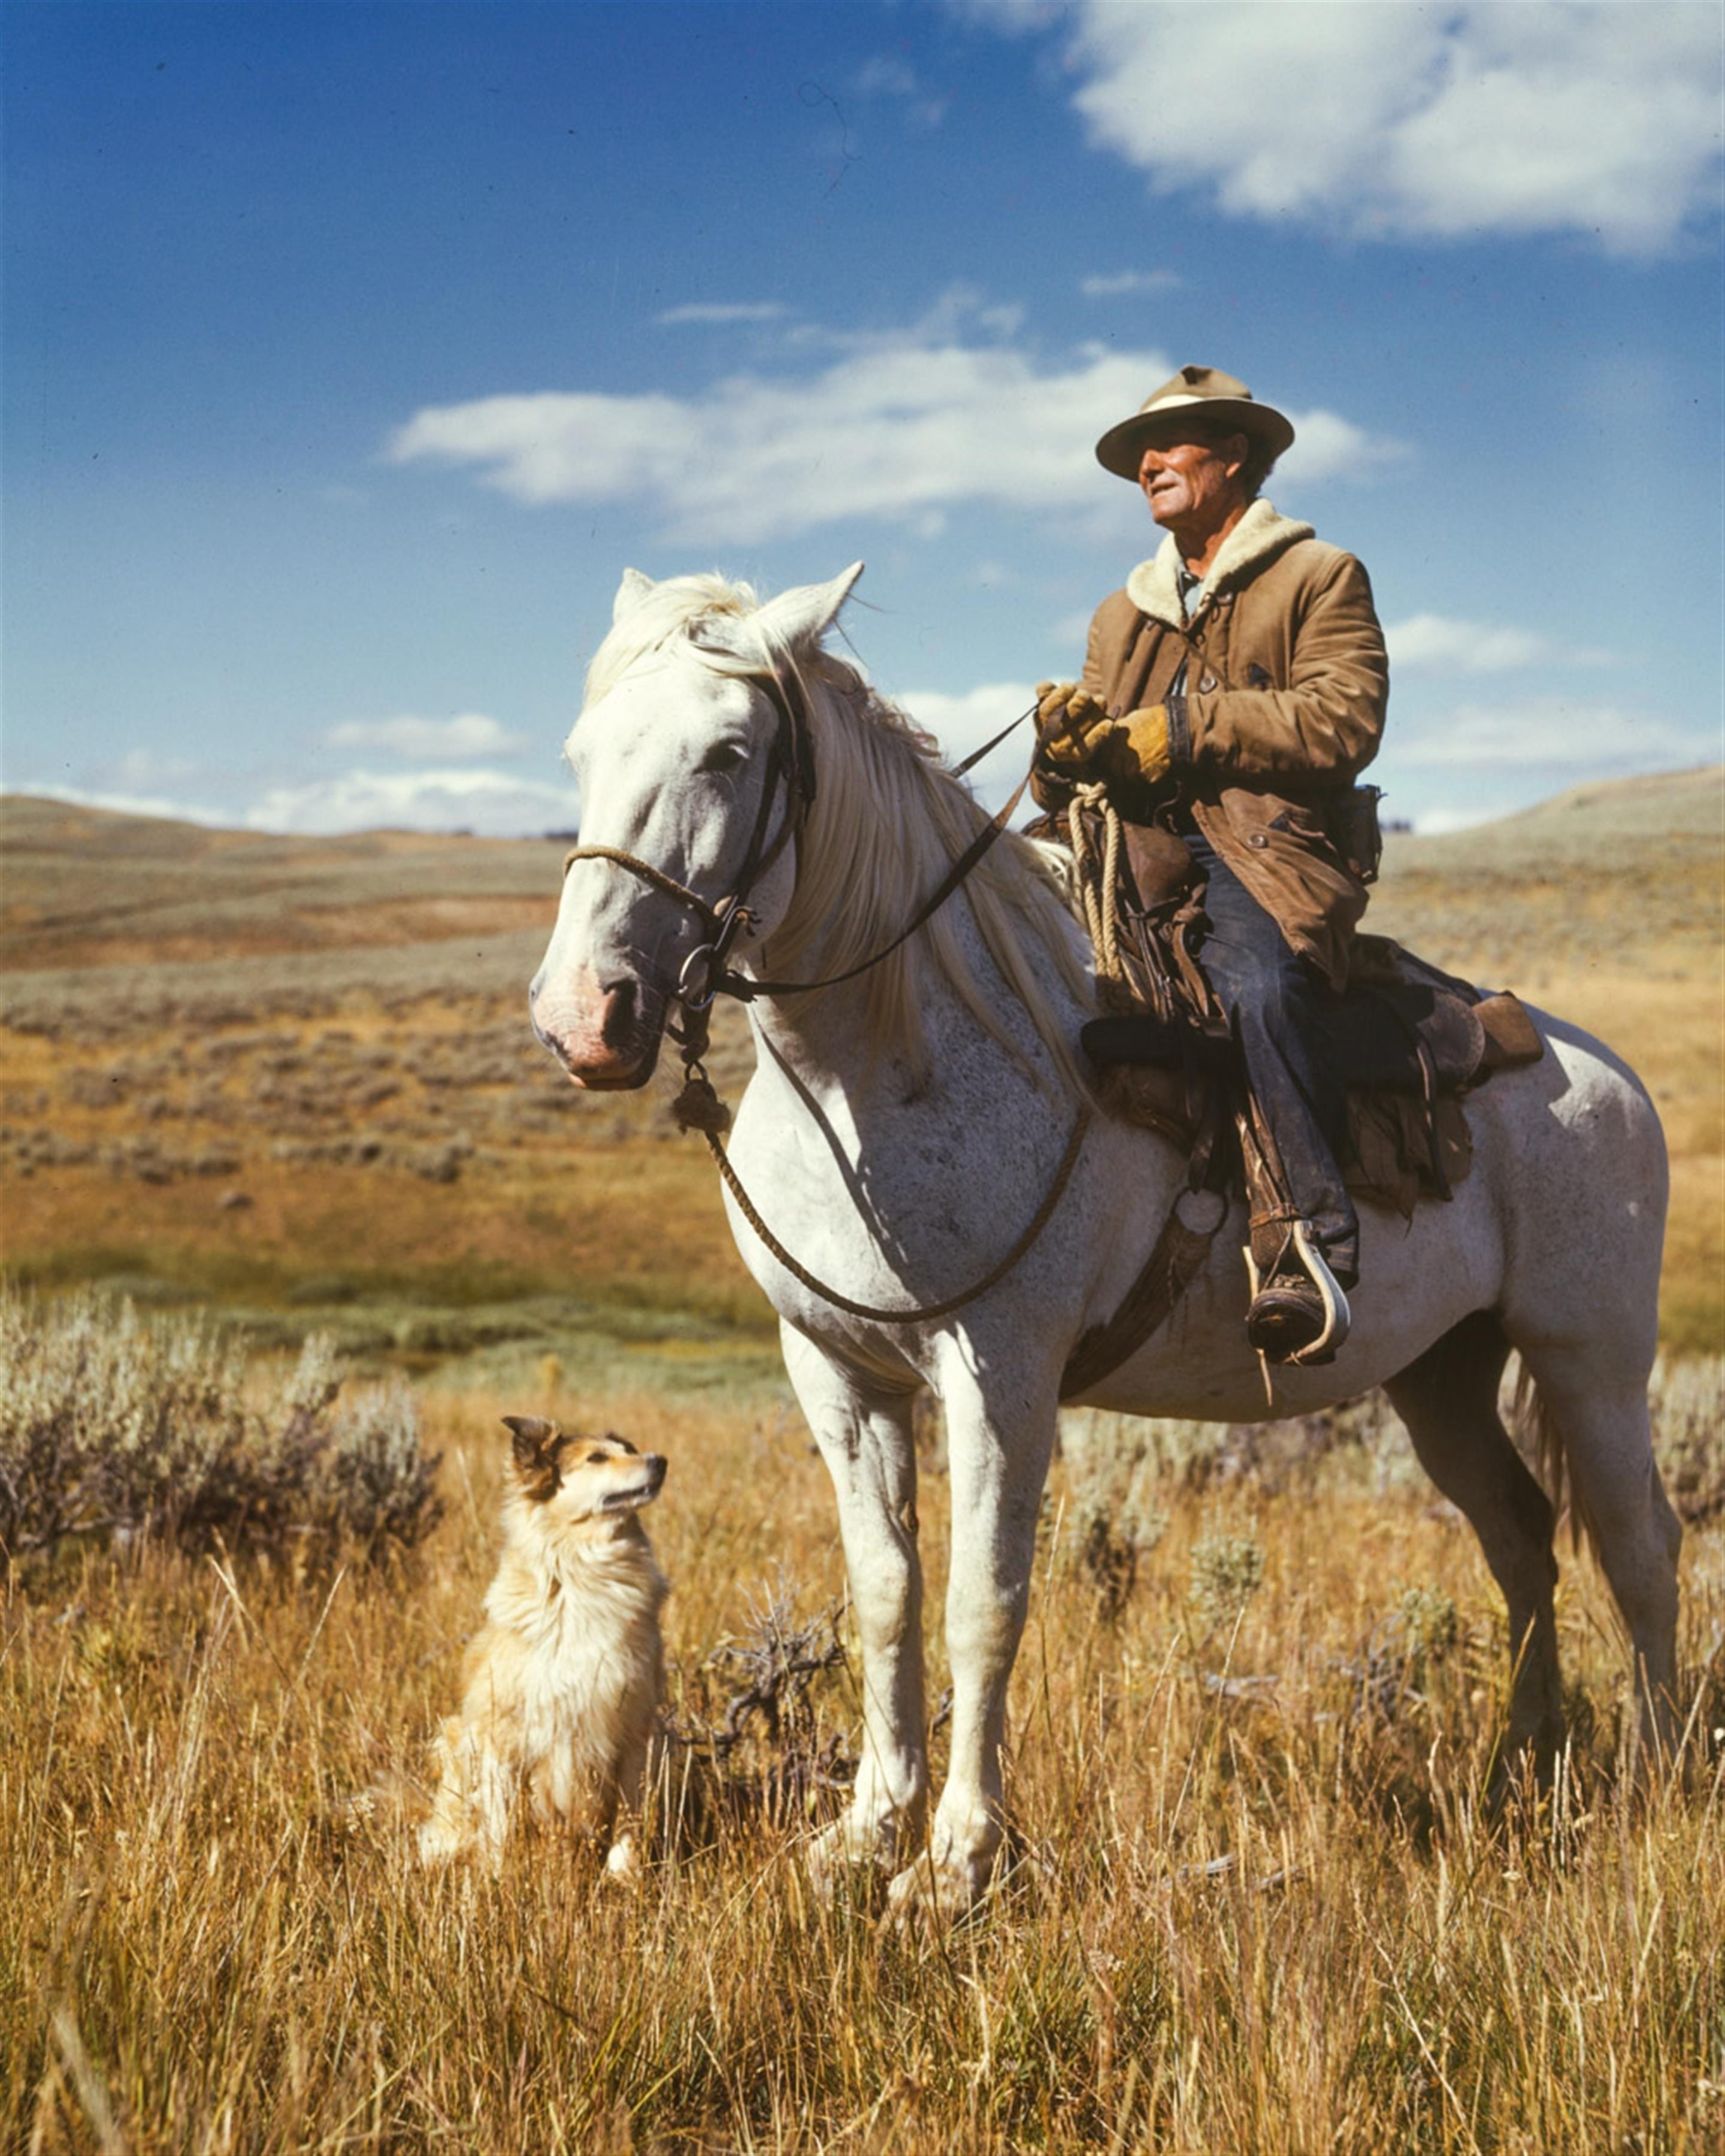 cowboy sat on horse in field with dog by his side